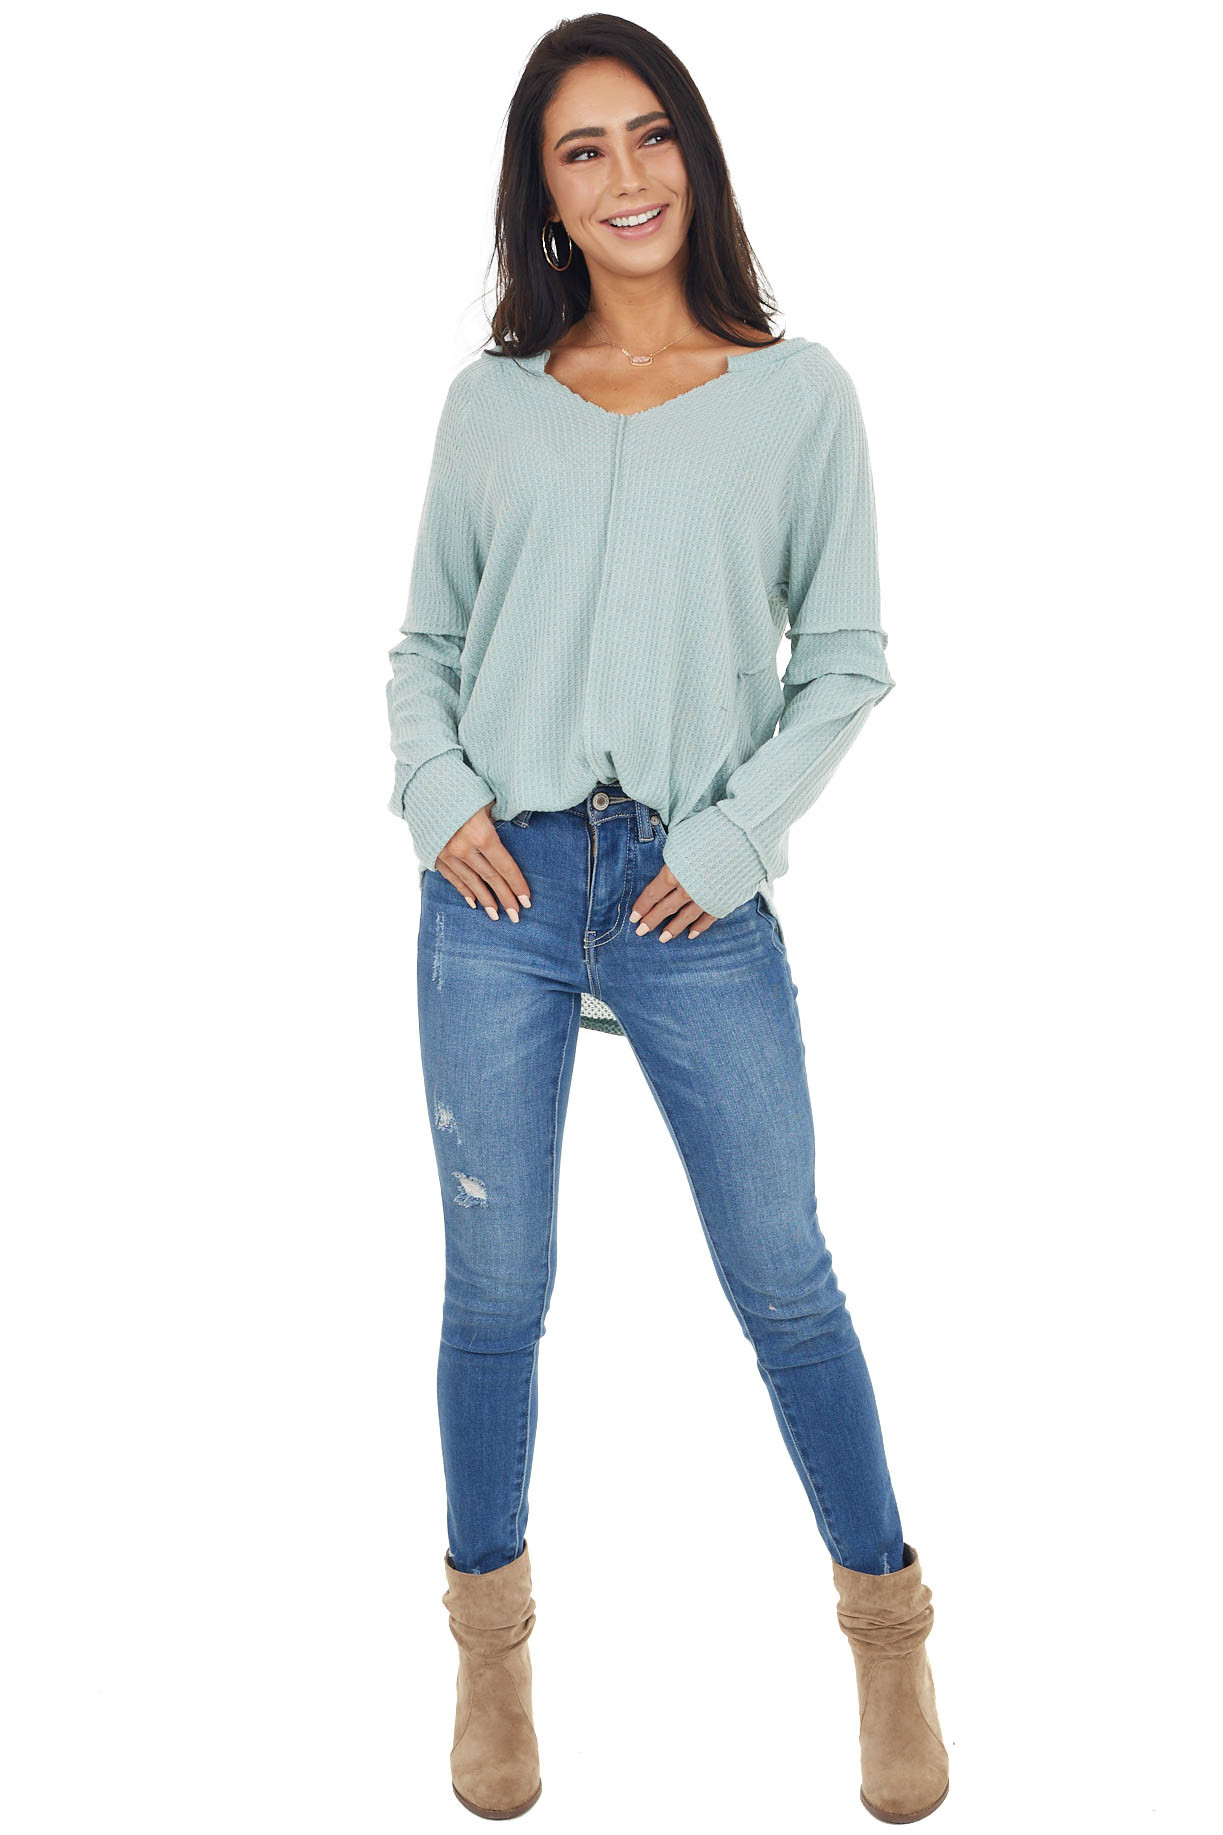 Seafoam Waffle Knit Notch Neck Top with Reverse Seam Details